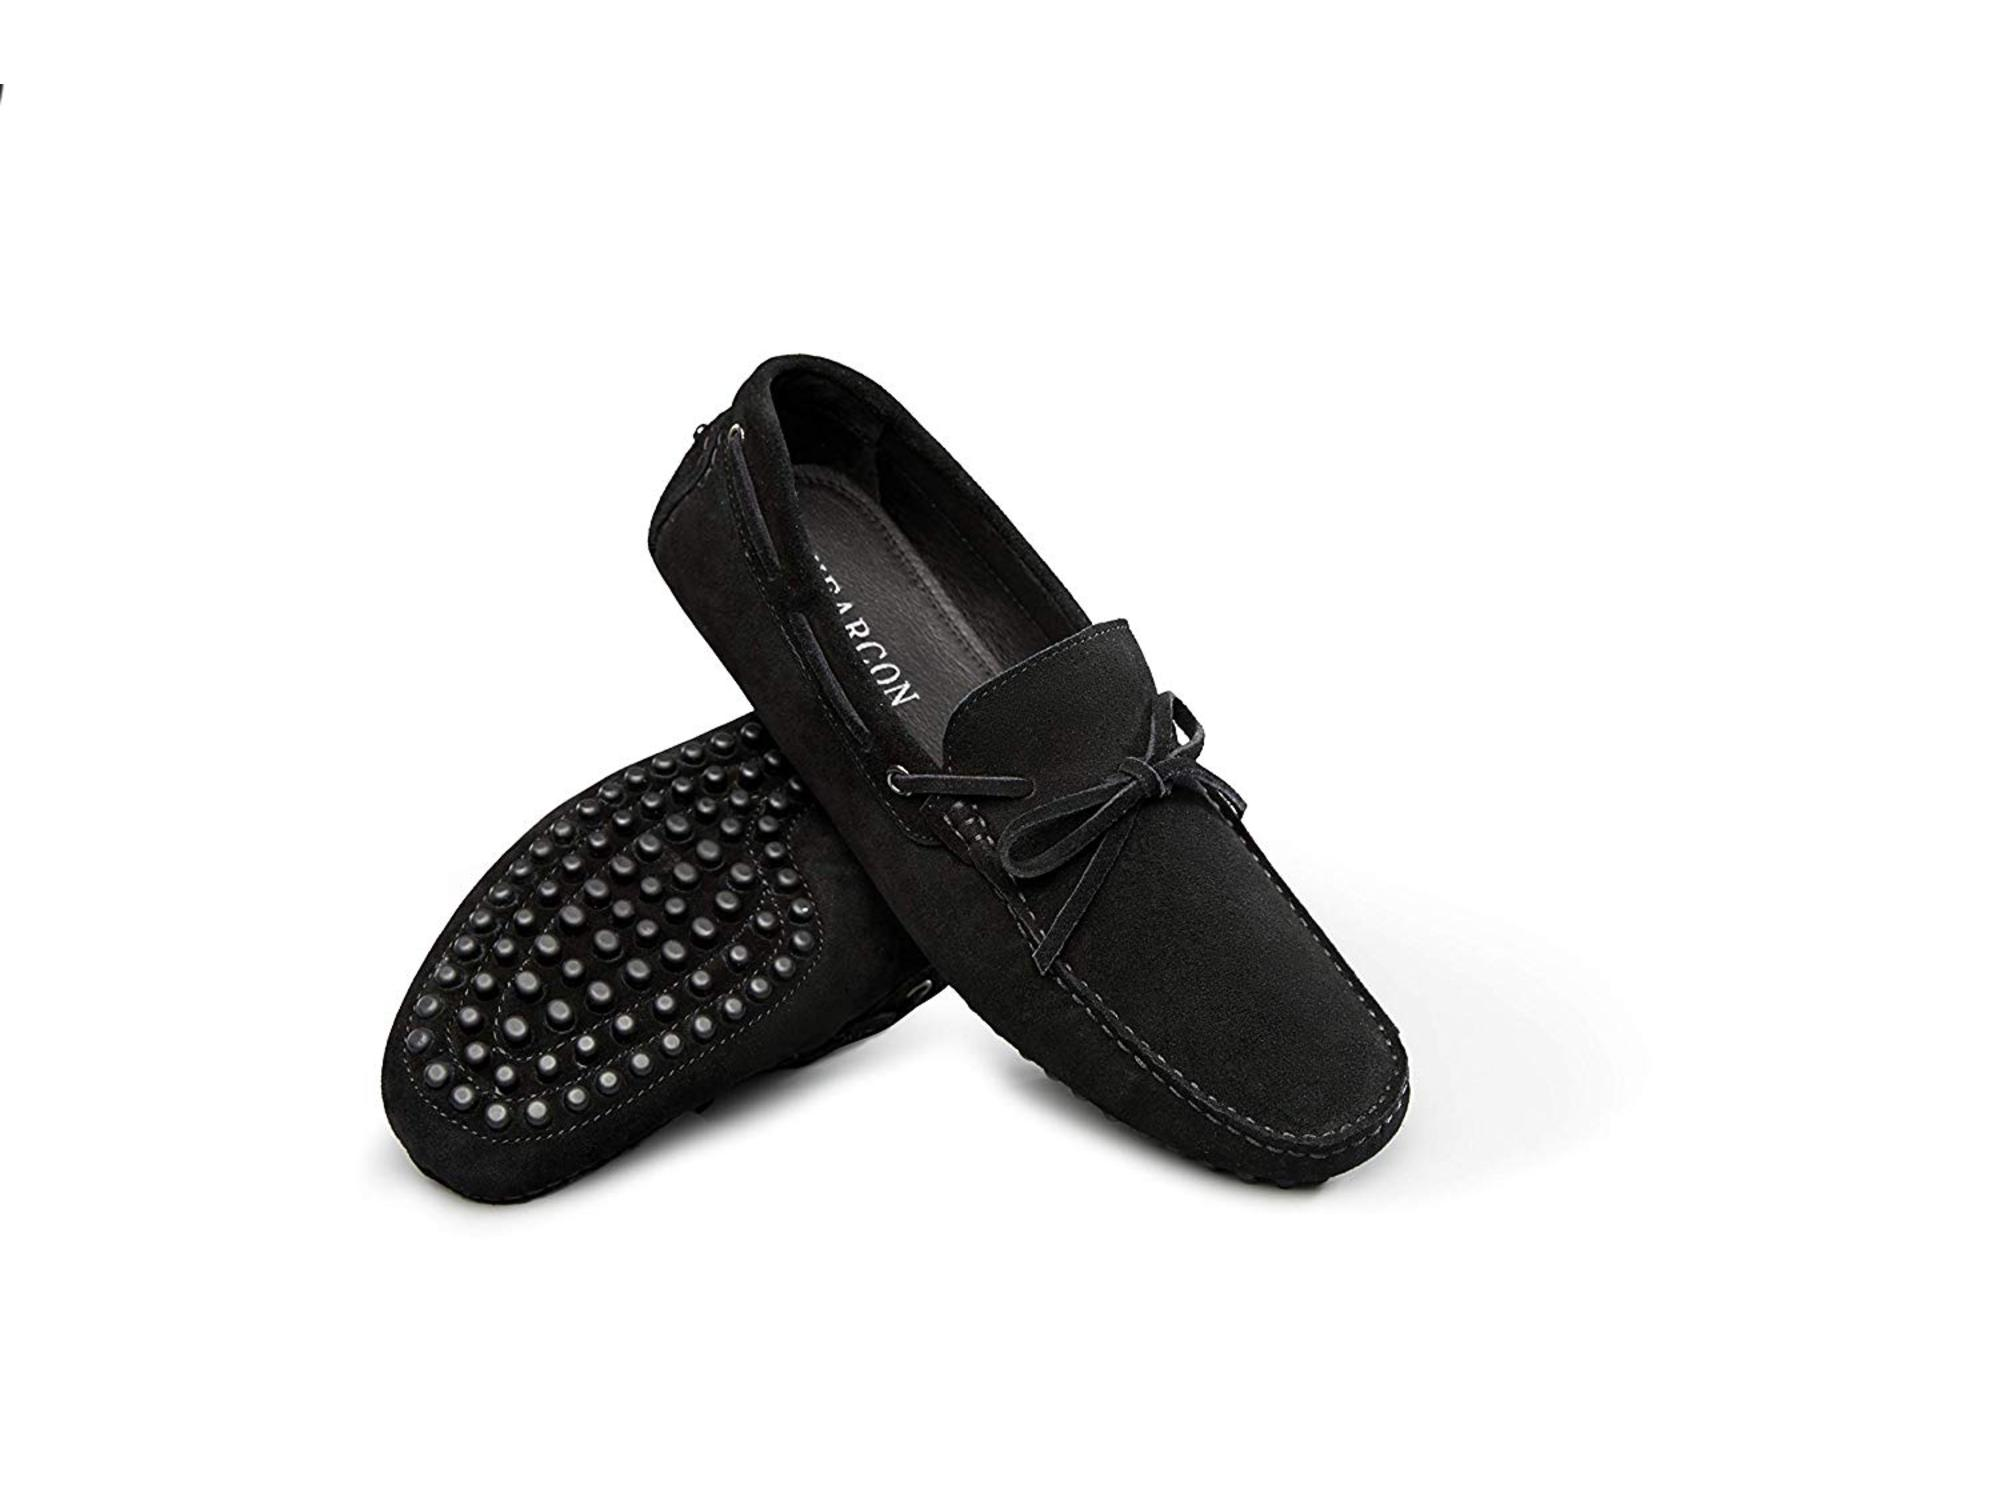 Leather Boat Shoes Loafers